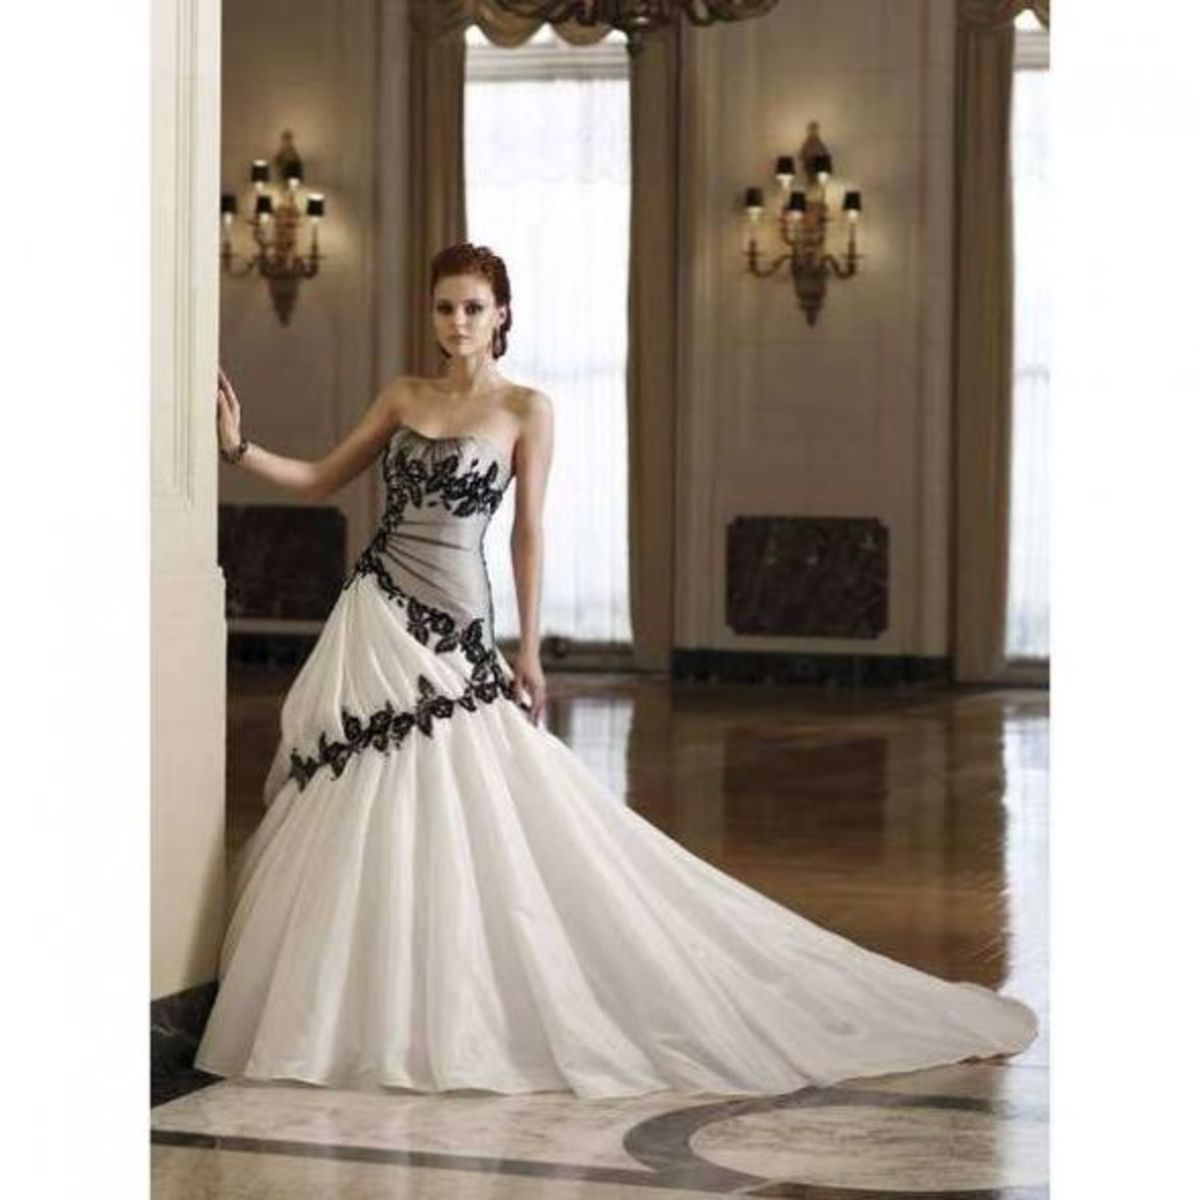 Spanish Wedding Dresses: Spanish Wedding Traditions